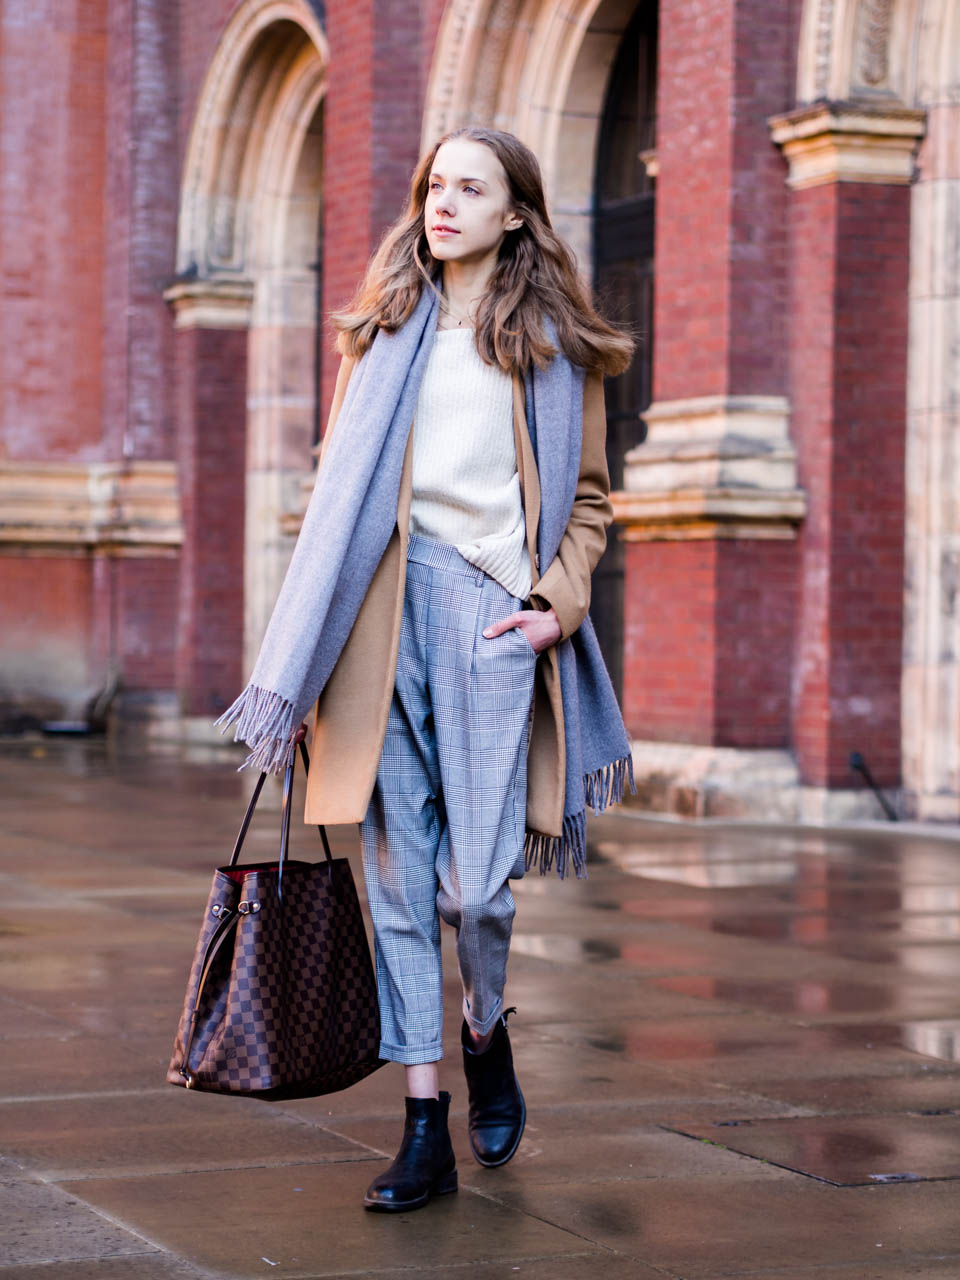 autumn-outfit-fashion-blogger-check-trousers-camel-coat-london-streetstyle